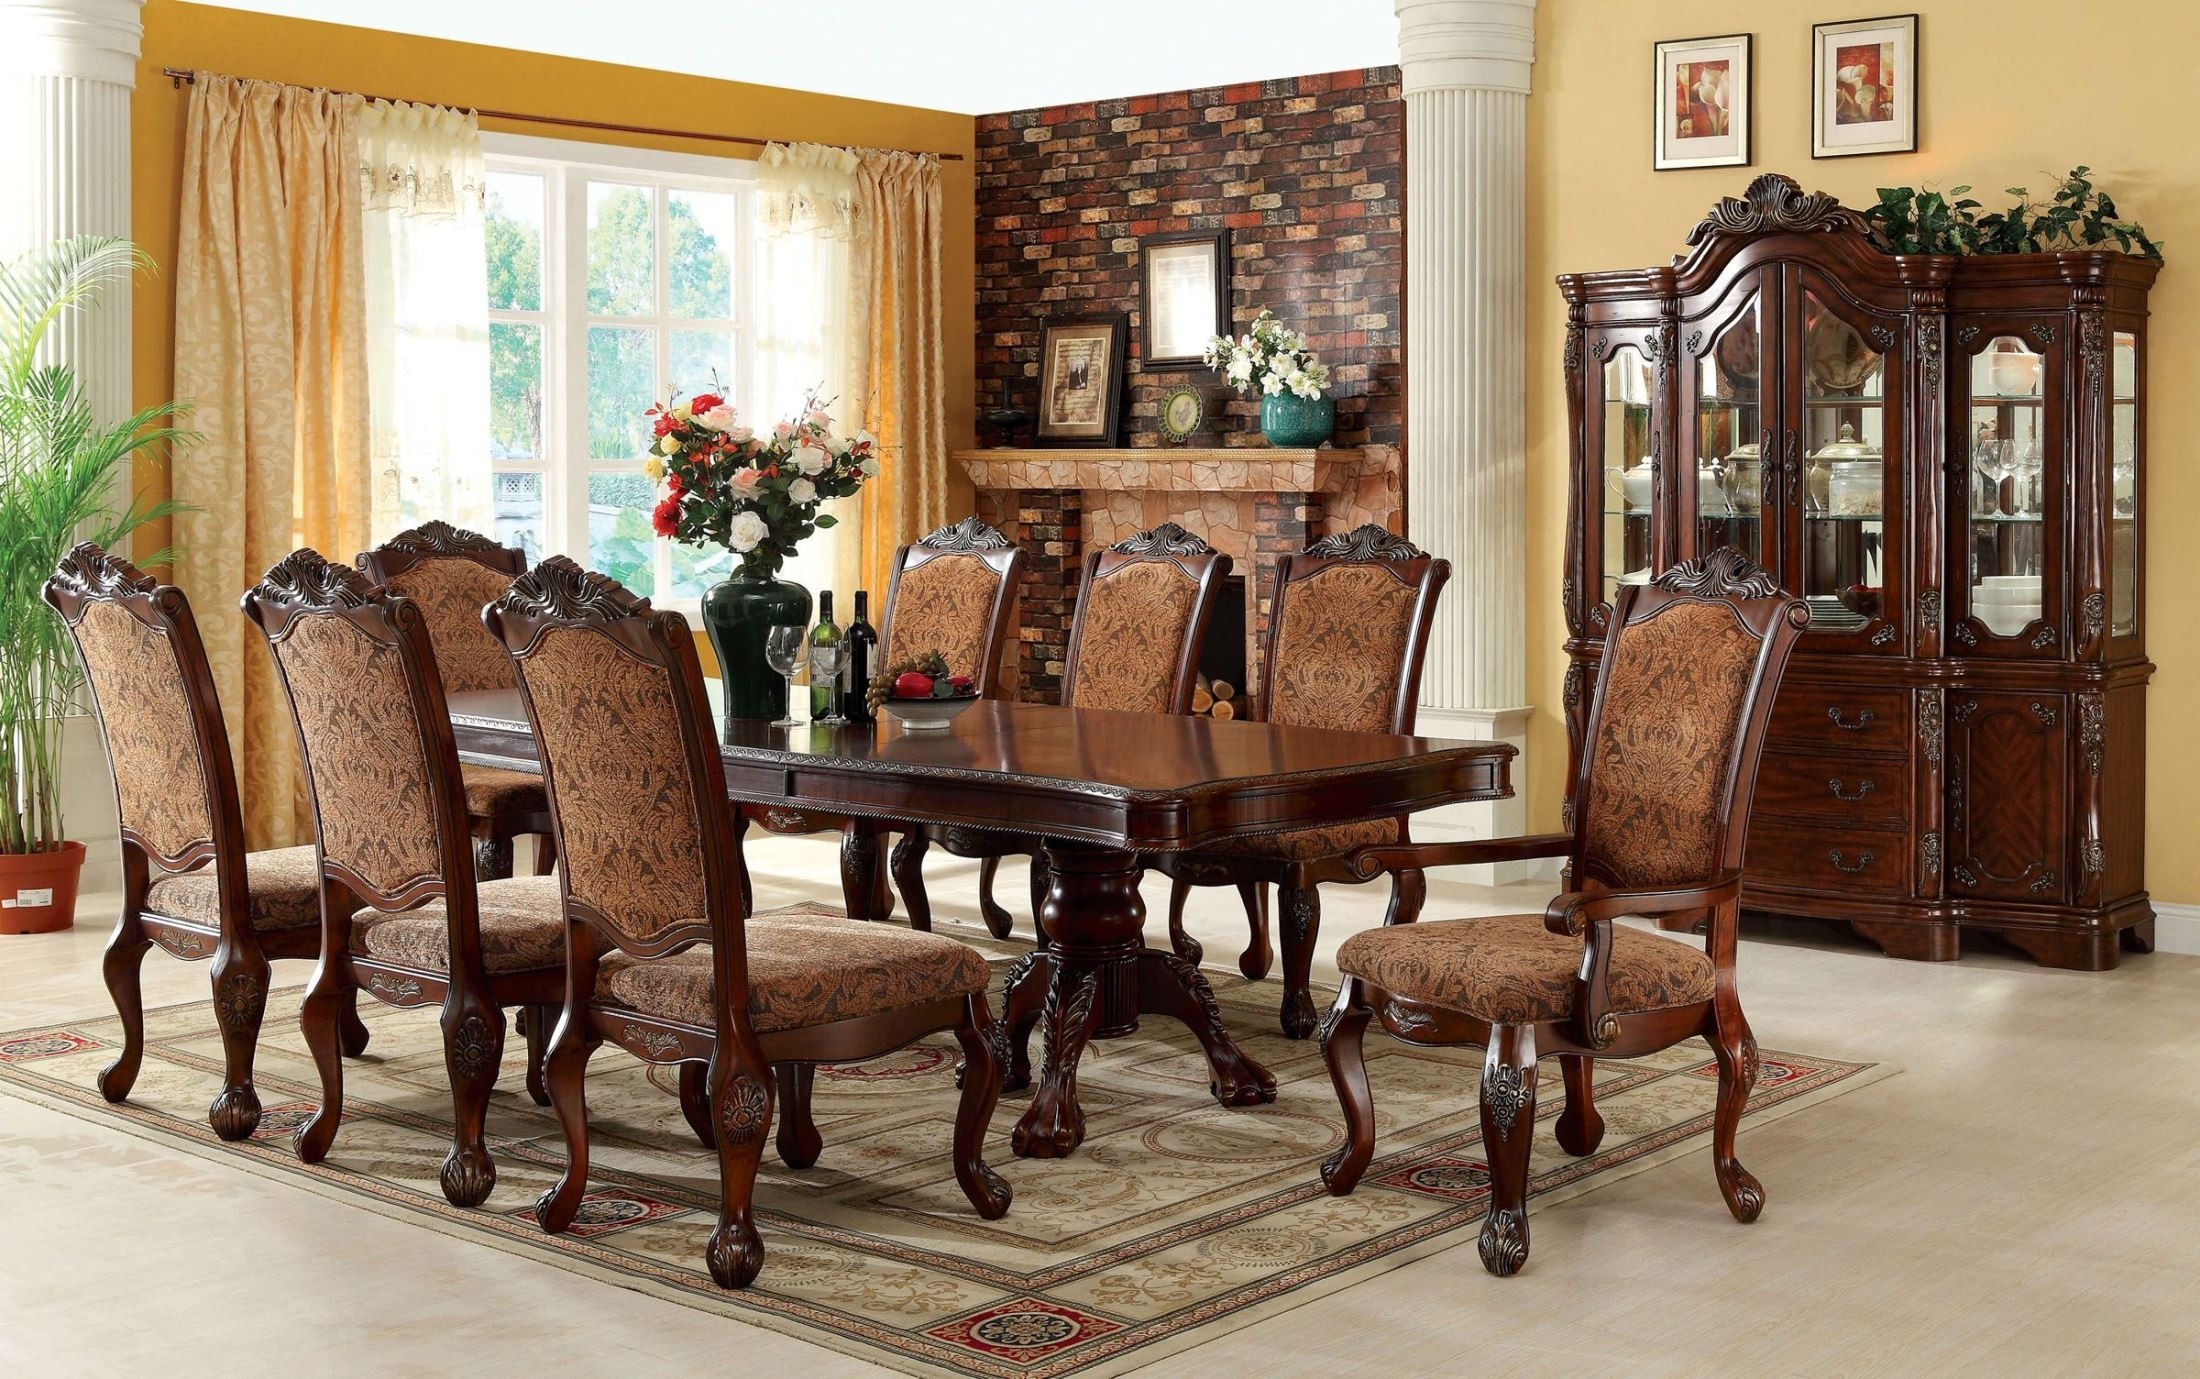 Cromwell antique cherry formal dining room set cm3103t for Antique dining room sets